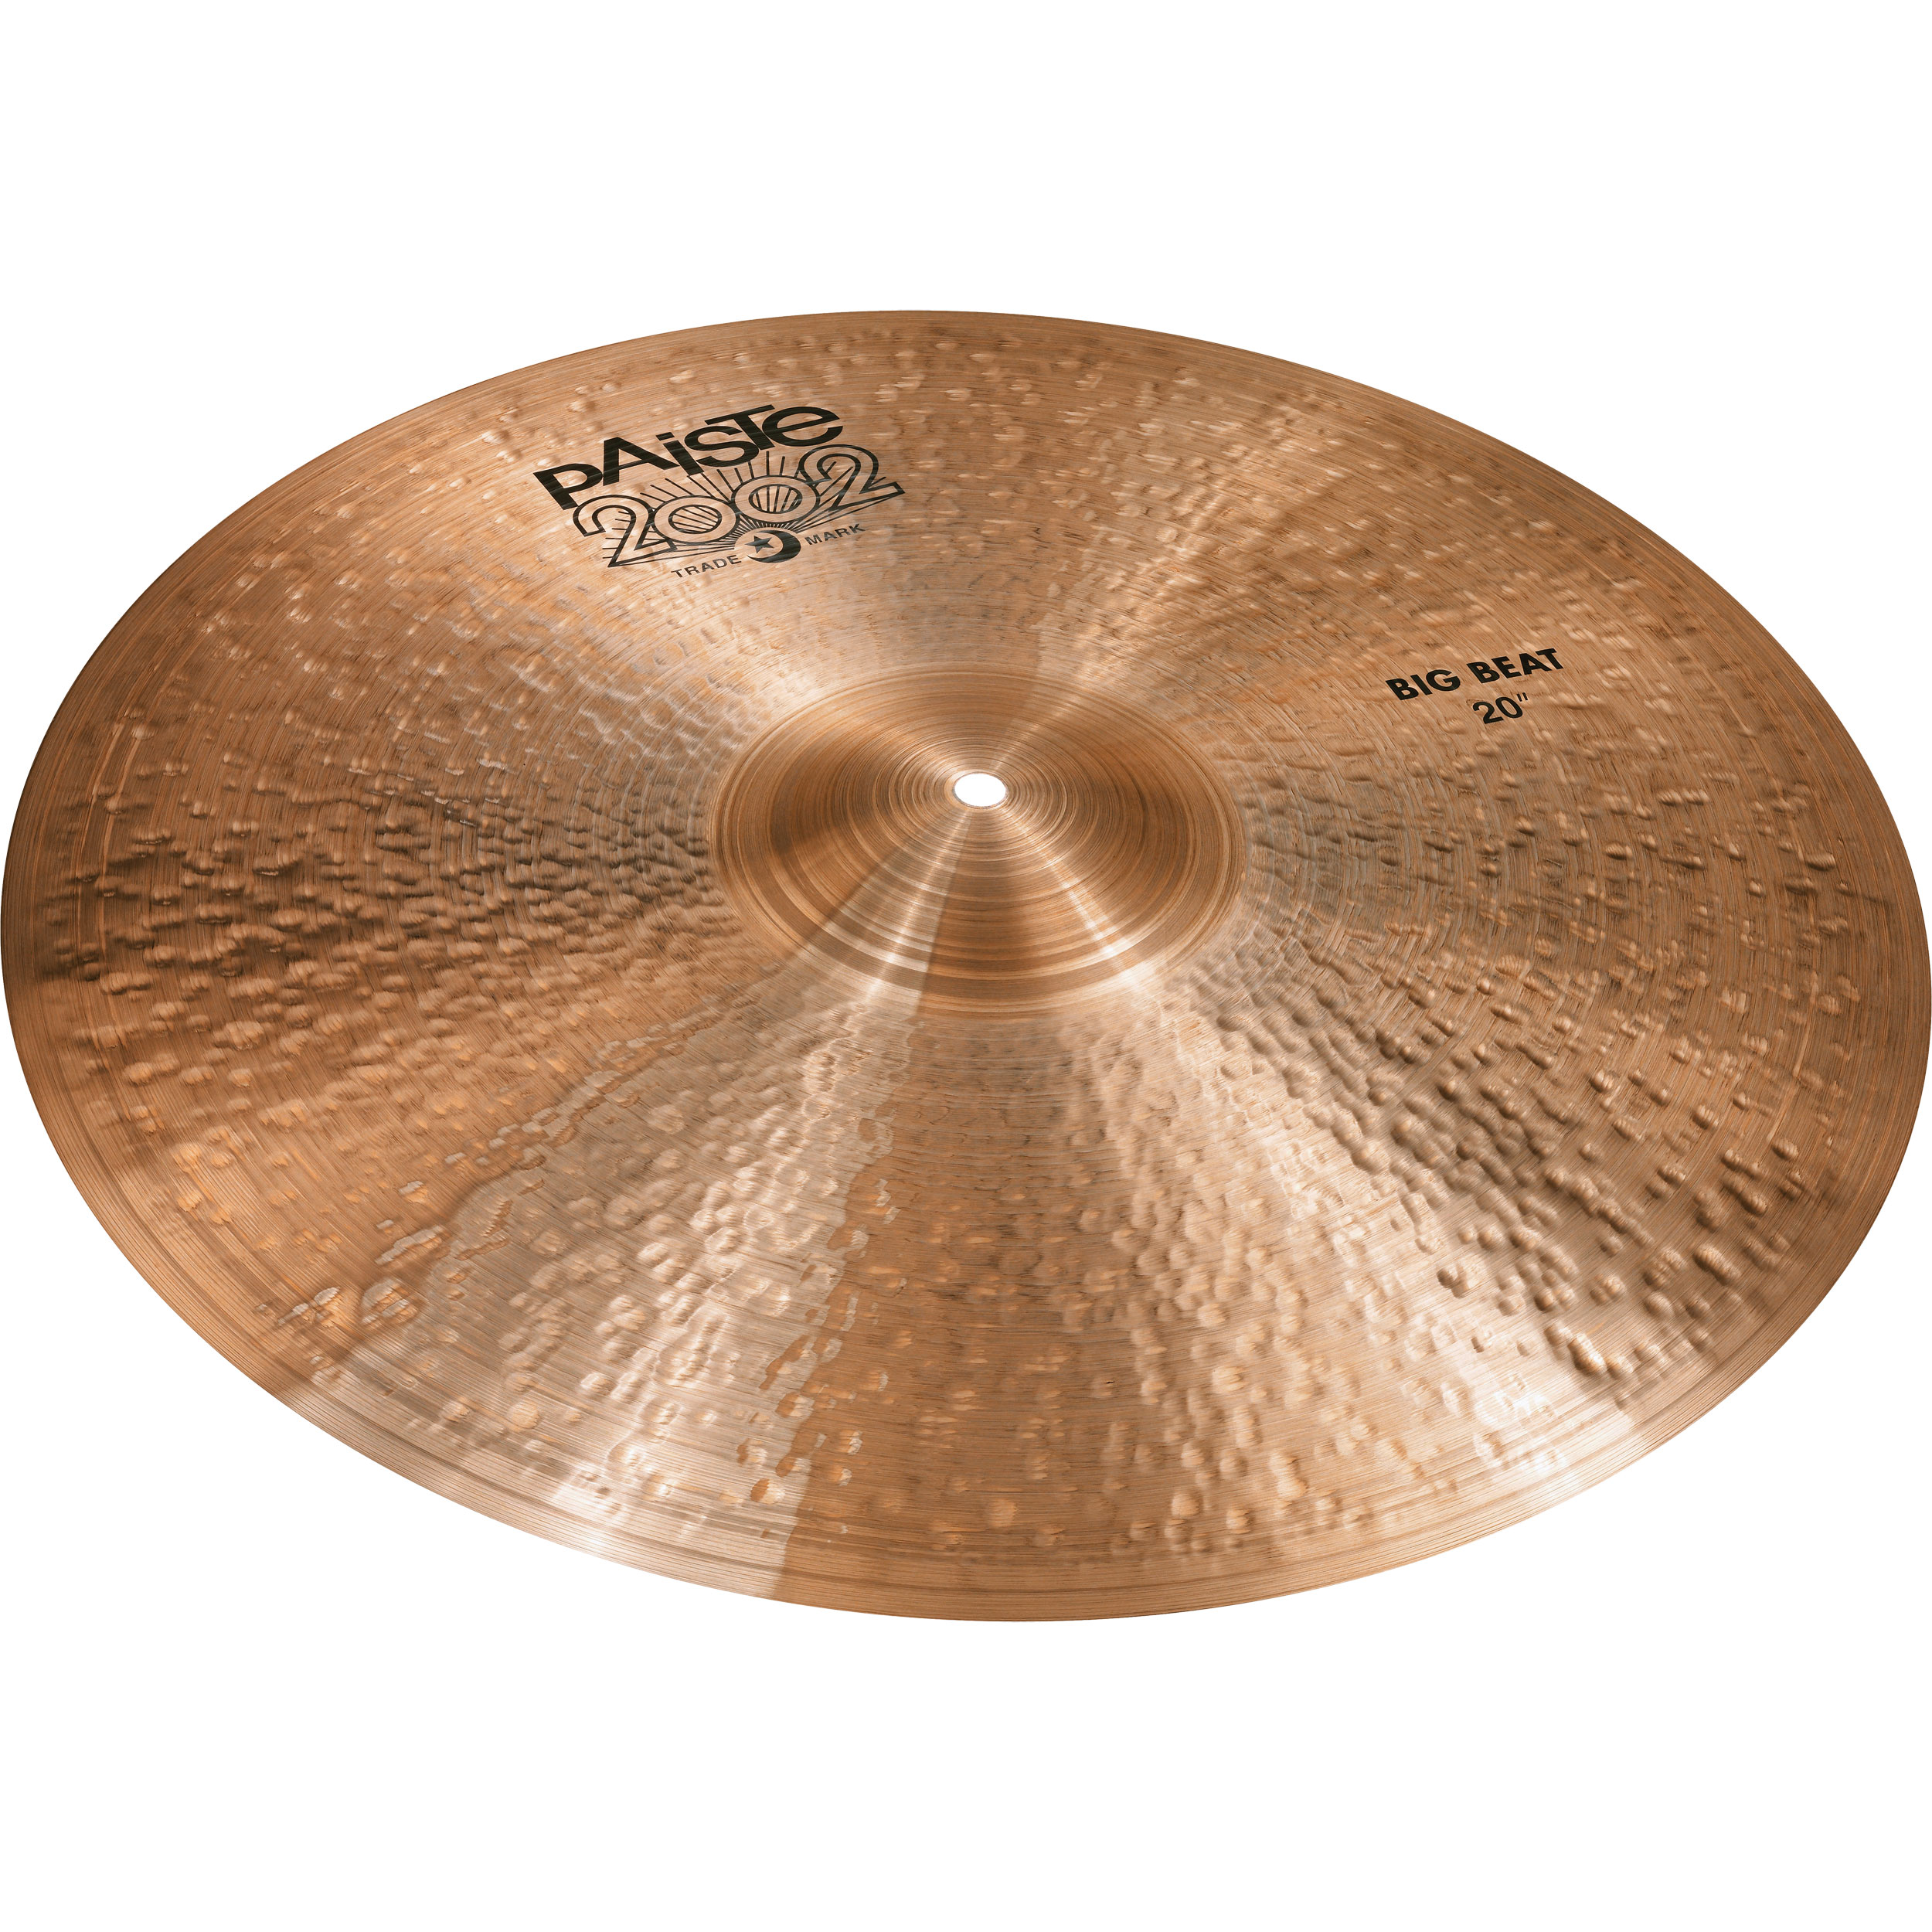 "Paiste 20"" 2002 Big Beat Cymbal"